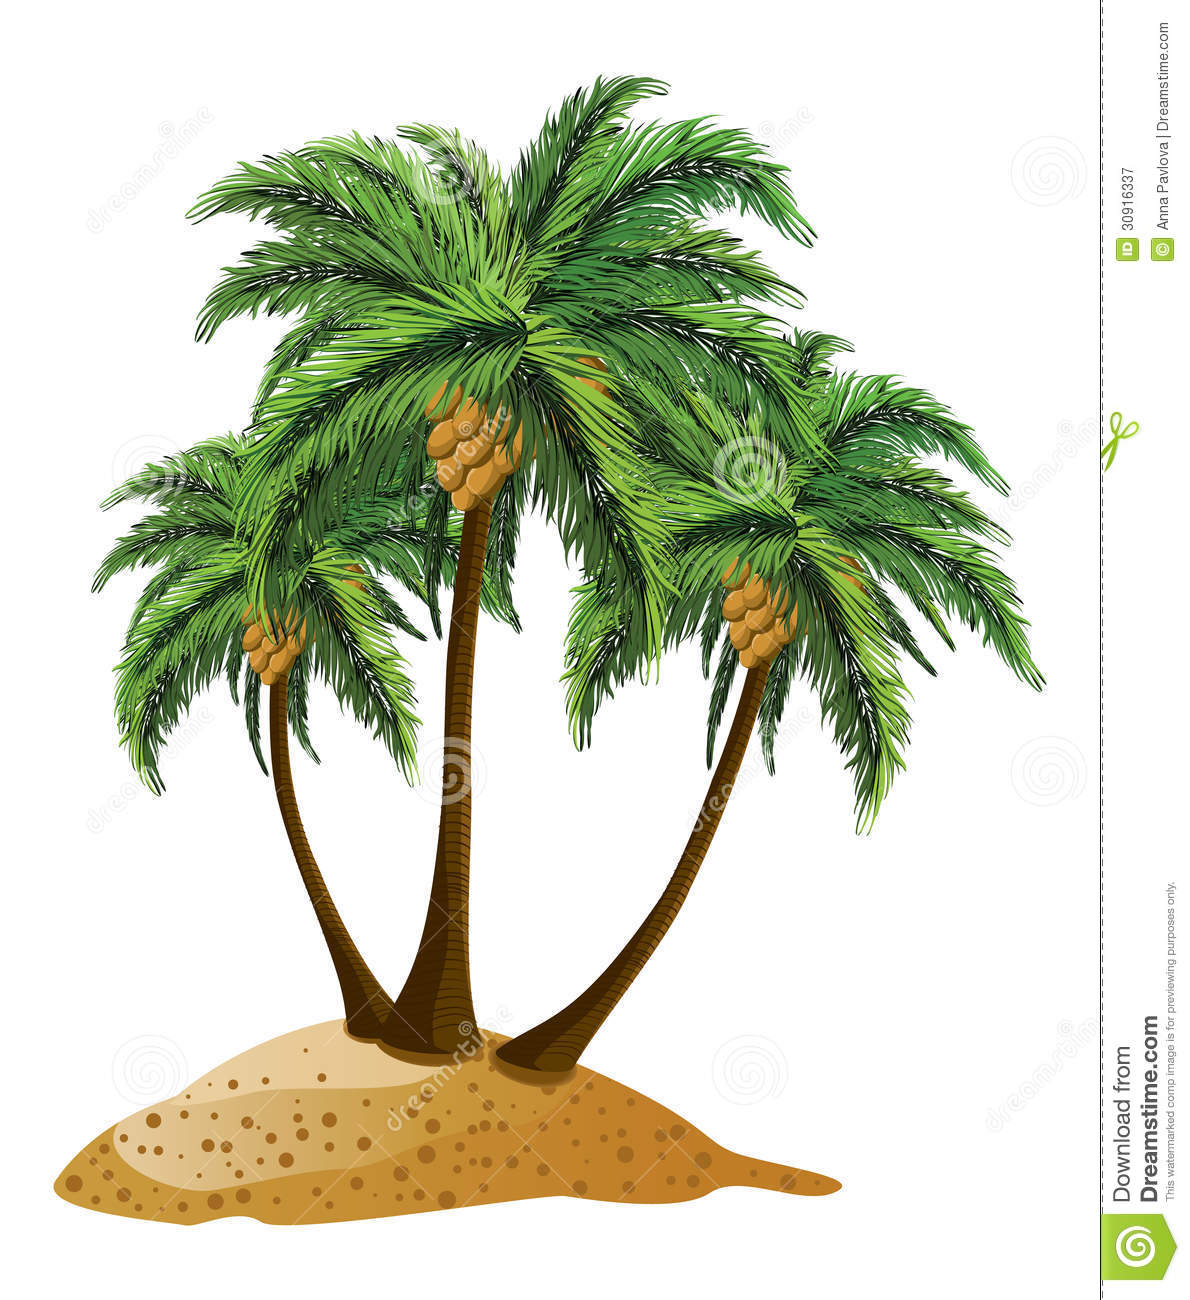 Cartoon Island With Palms Royalty Free Stock Photography - Image ...